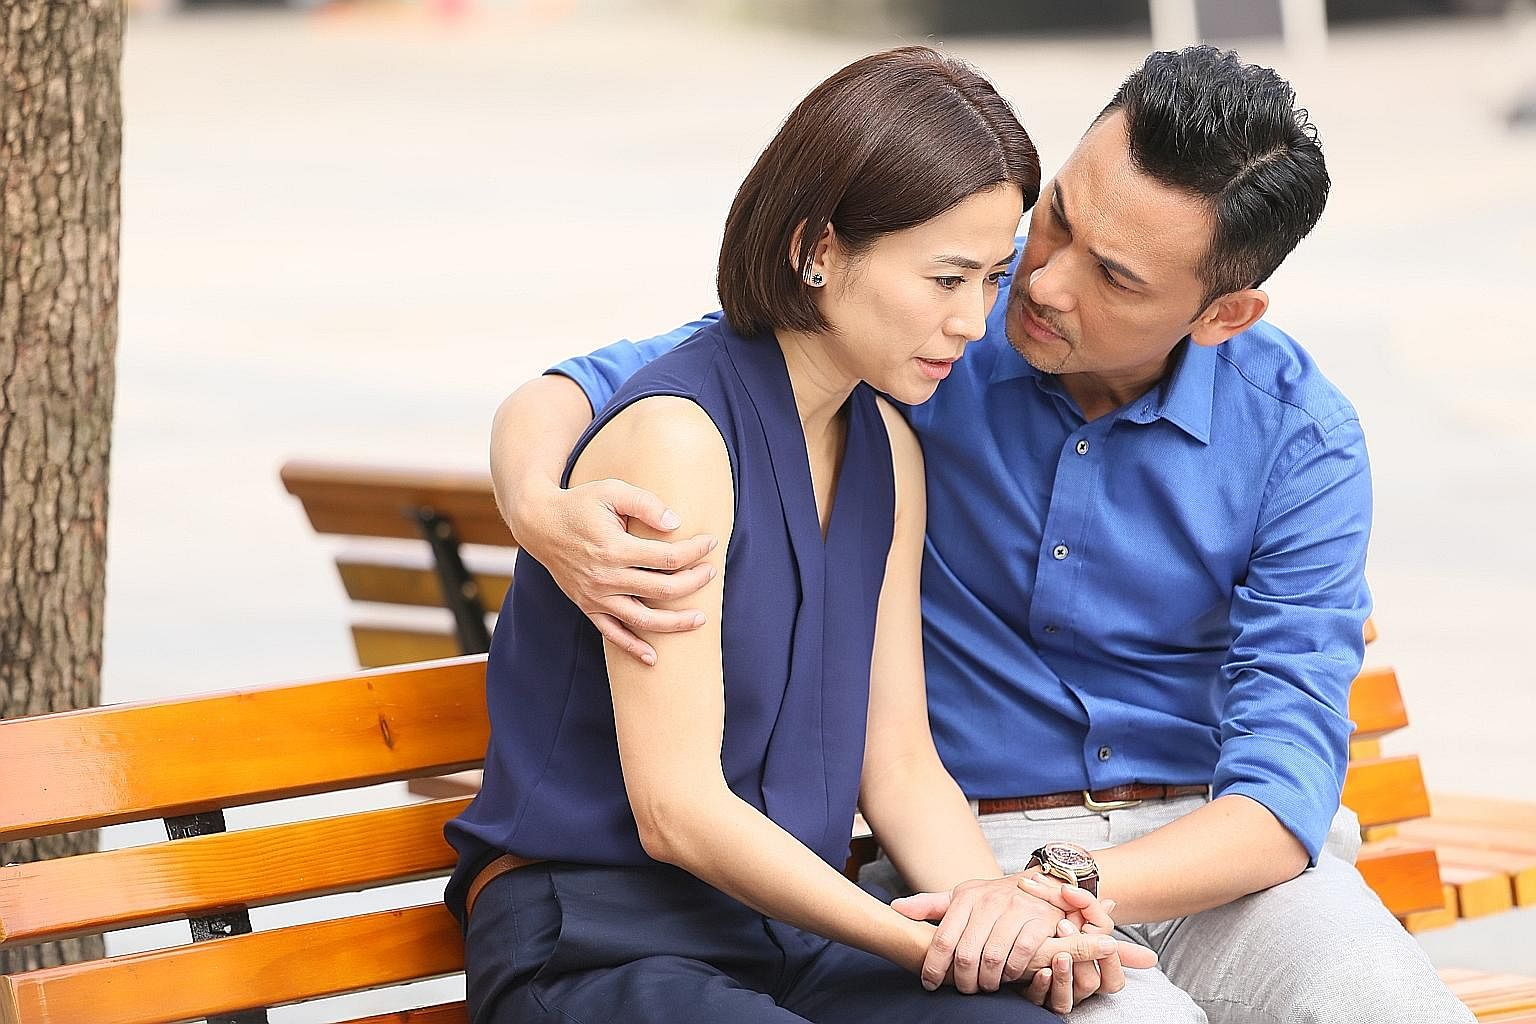 Jessica Hsuan and Frankie Lam are a will-they-won't-they former couple in My Unfair Lady.